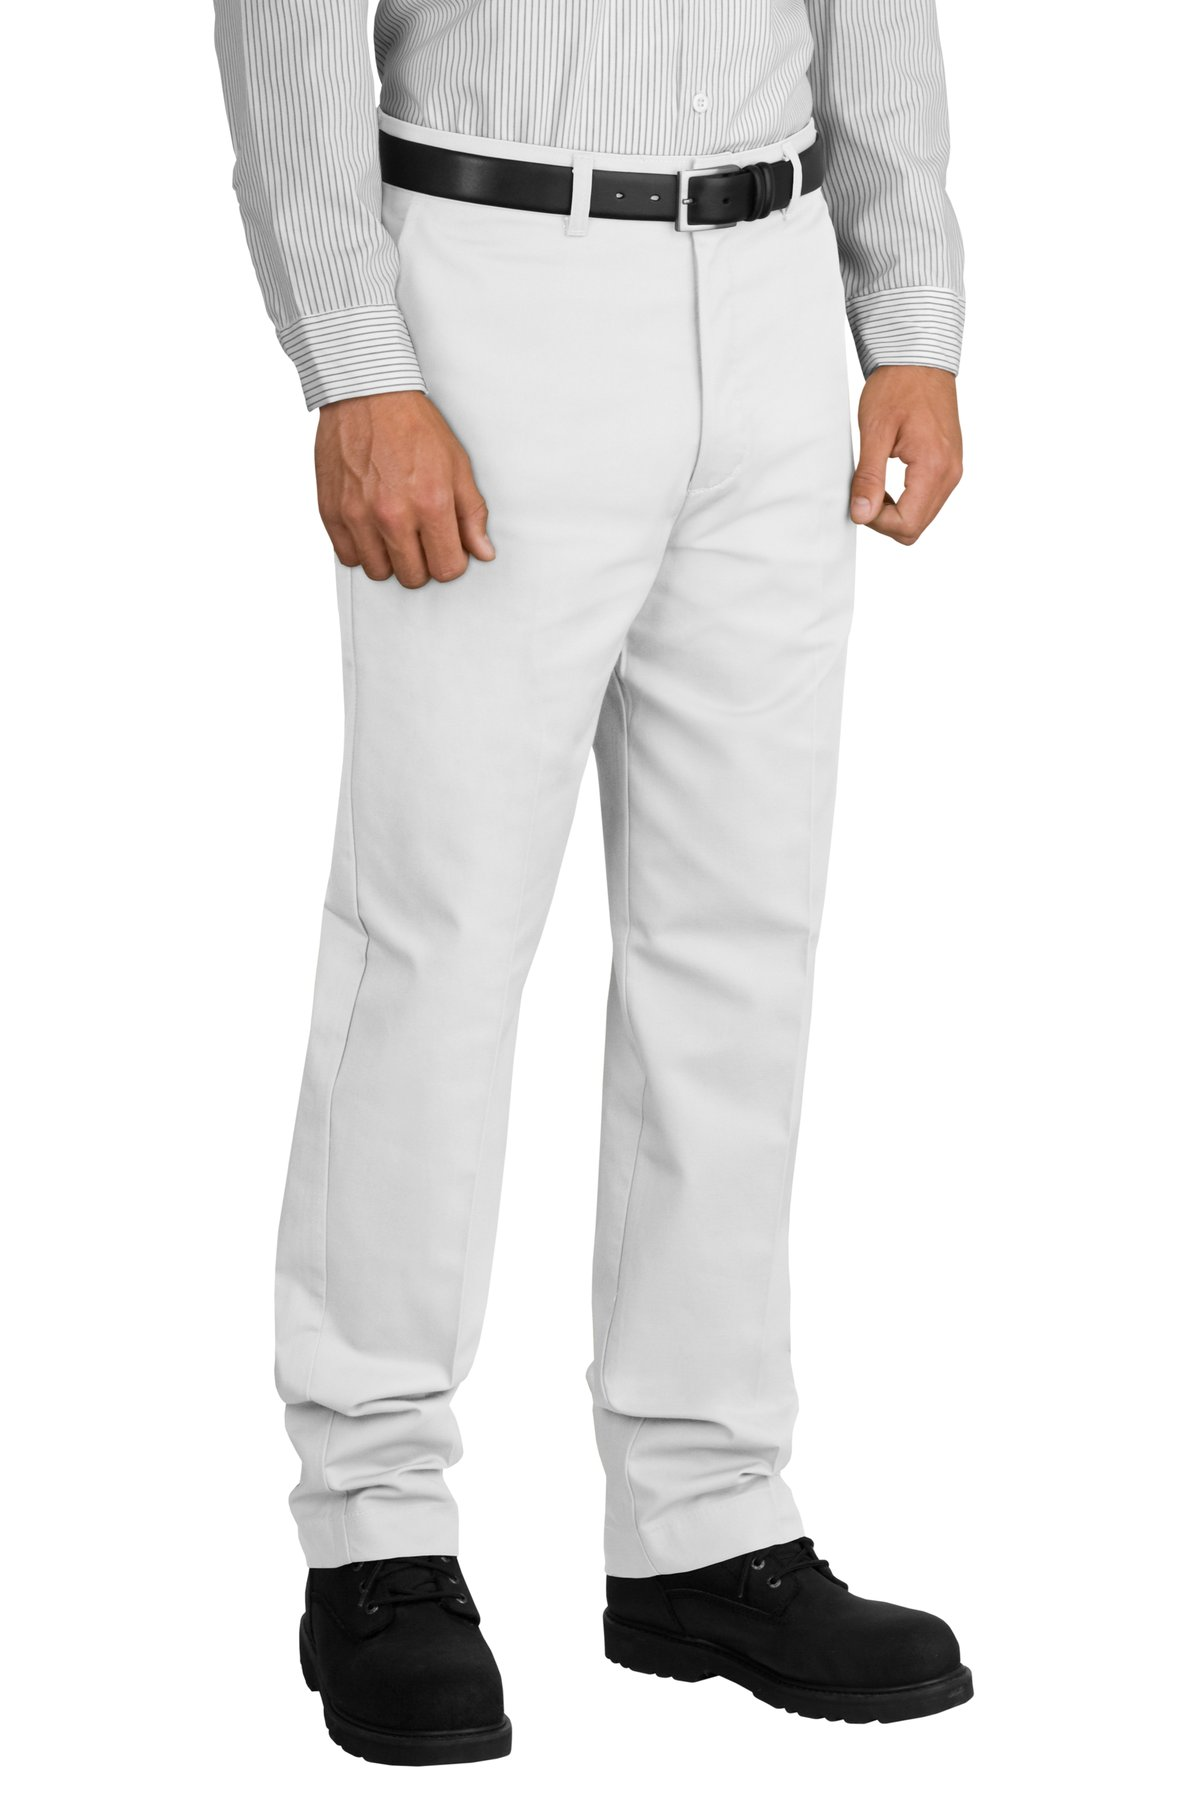 Red Kap ®  Industrial Work Pant.  PT20 - White